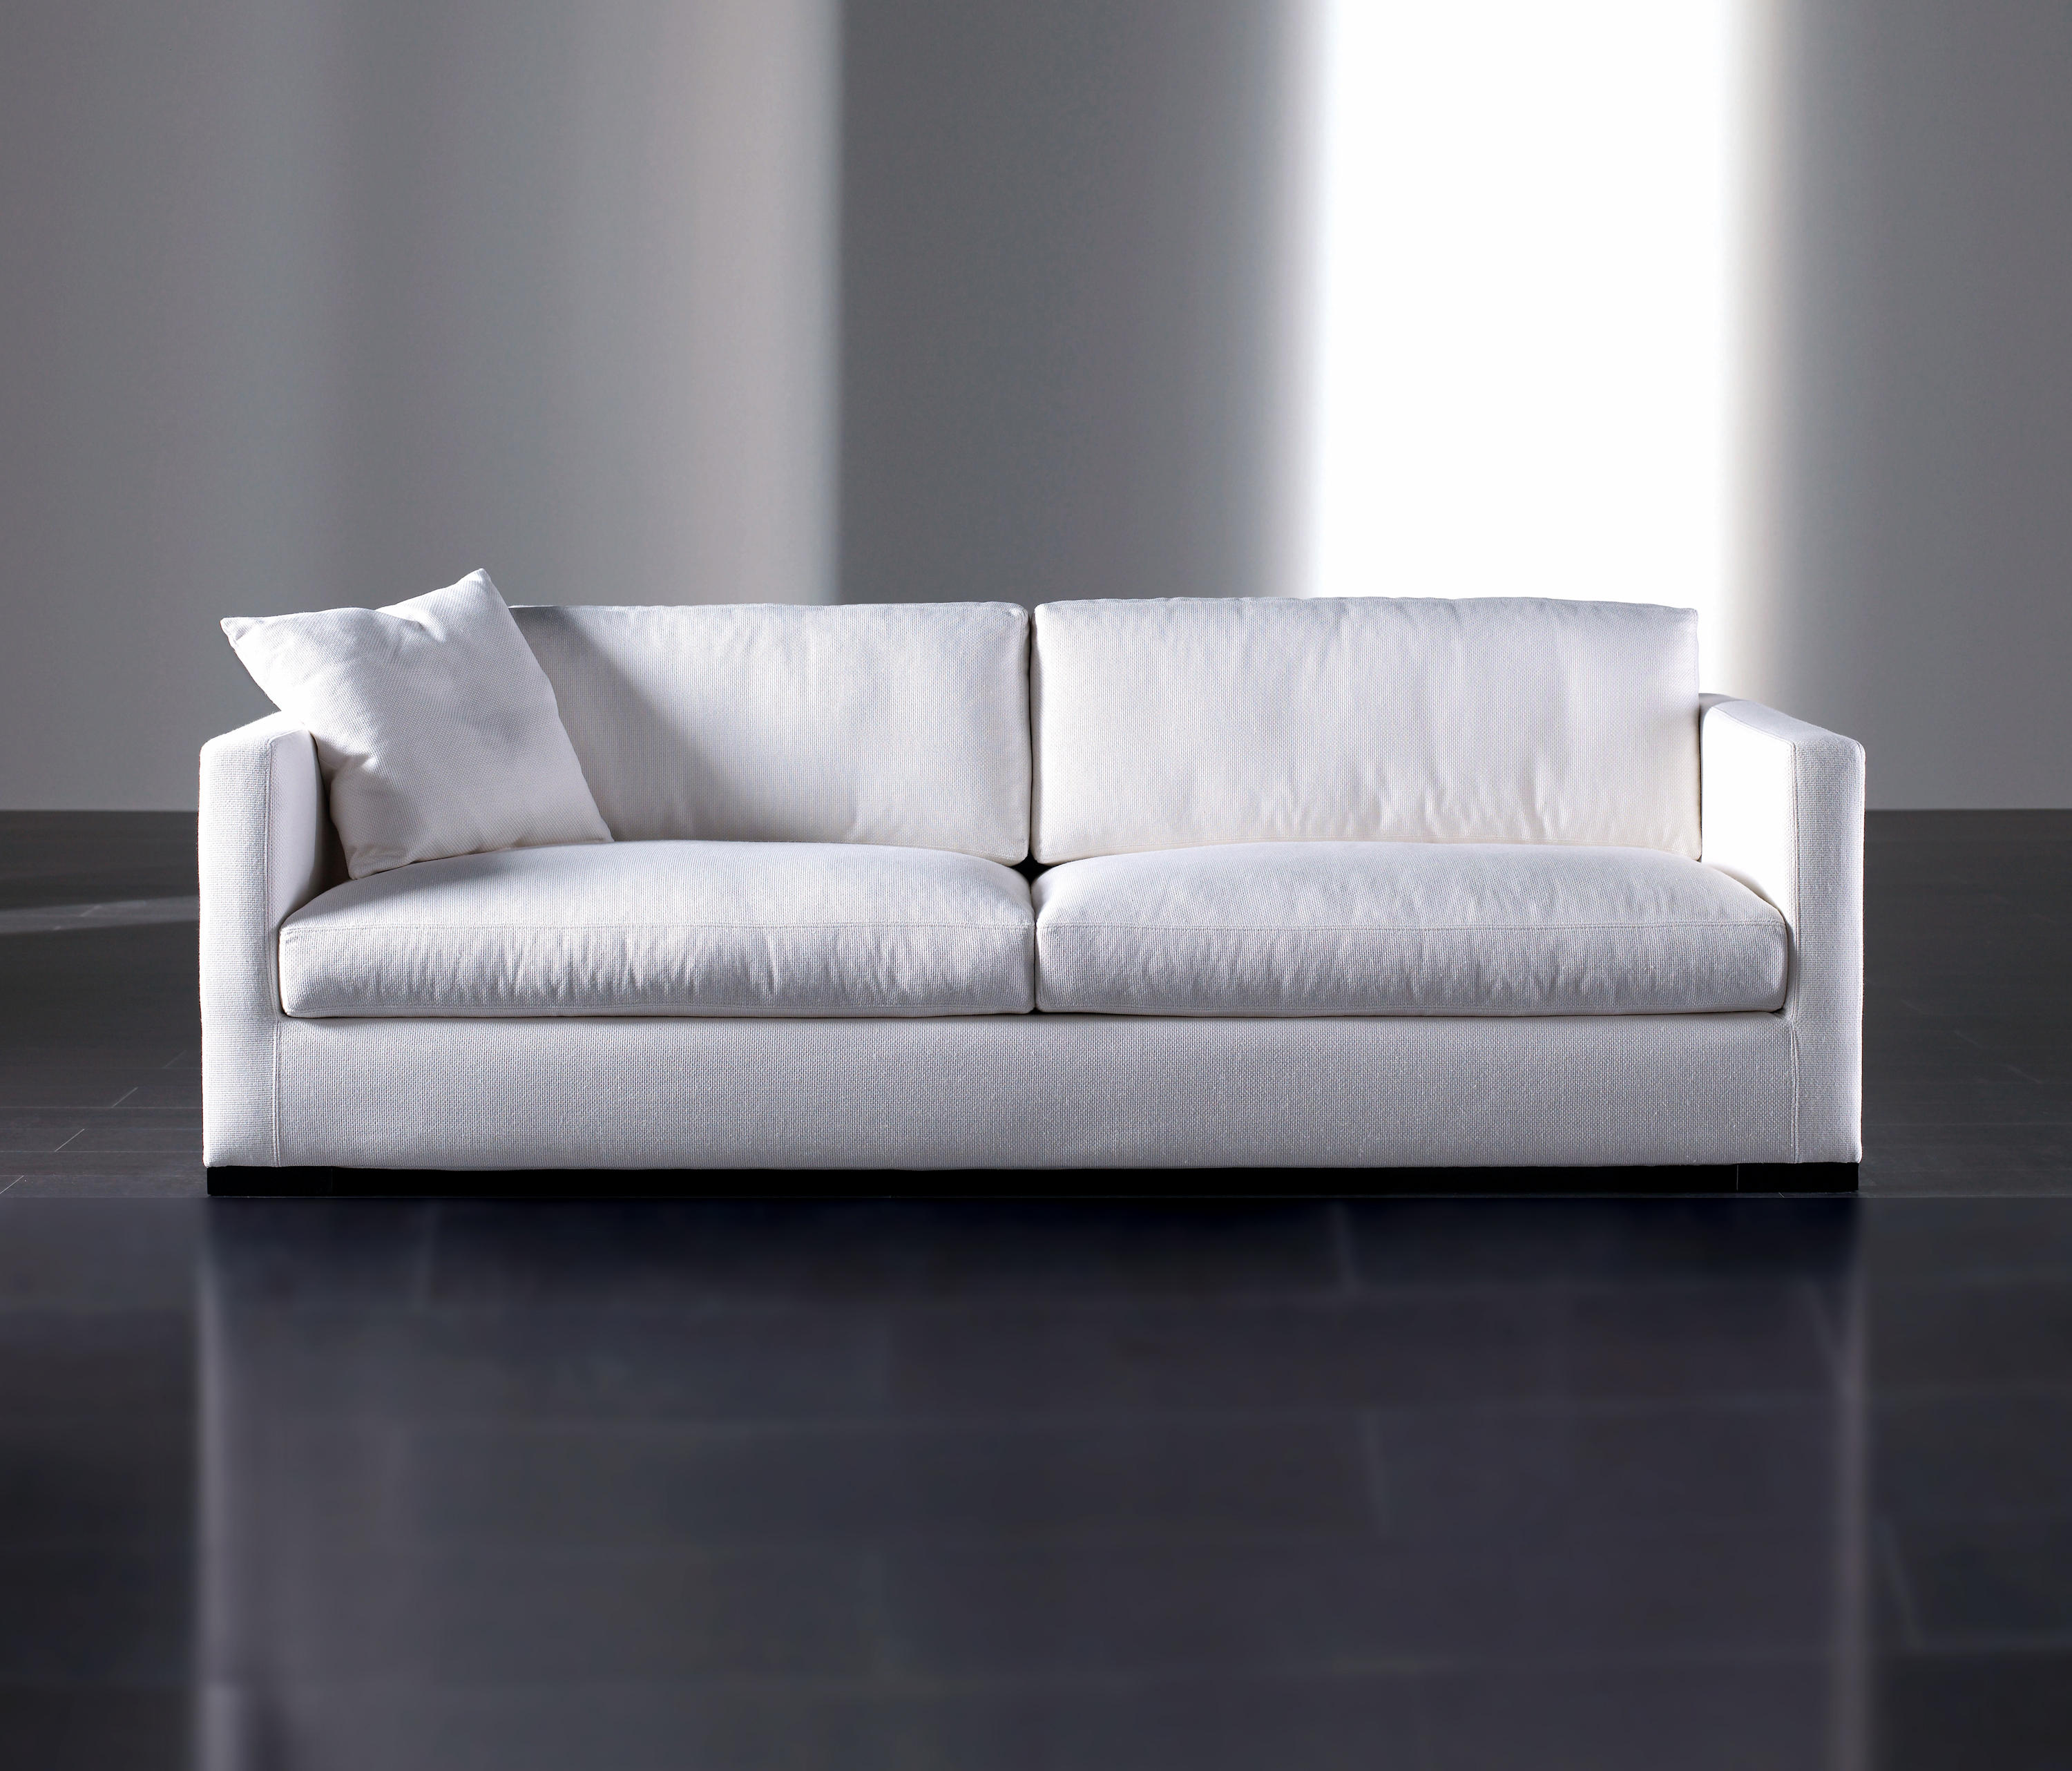 belmon sofa sofa bed sofa beds from meridiani architonic. Black Bedroom Furniture Sets. Home Design Ideas